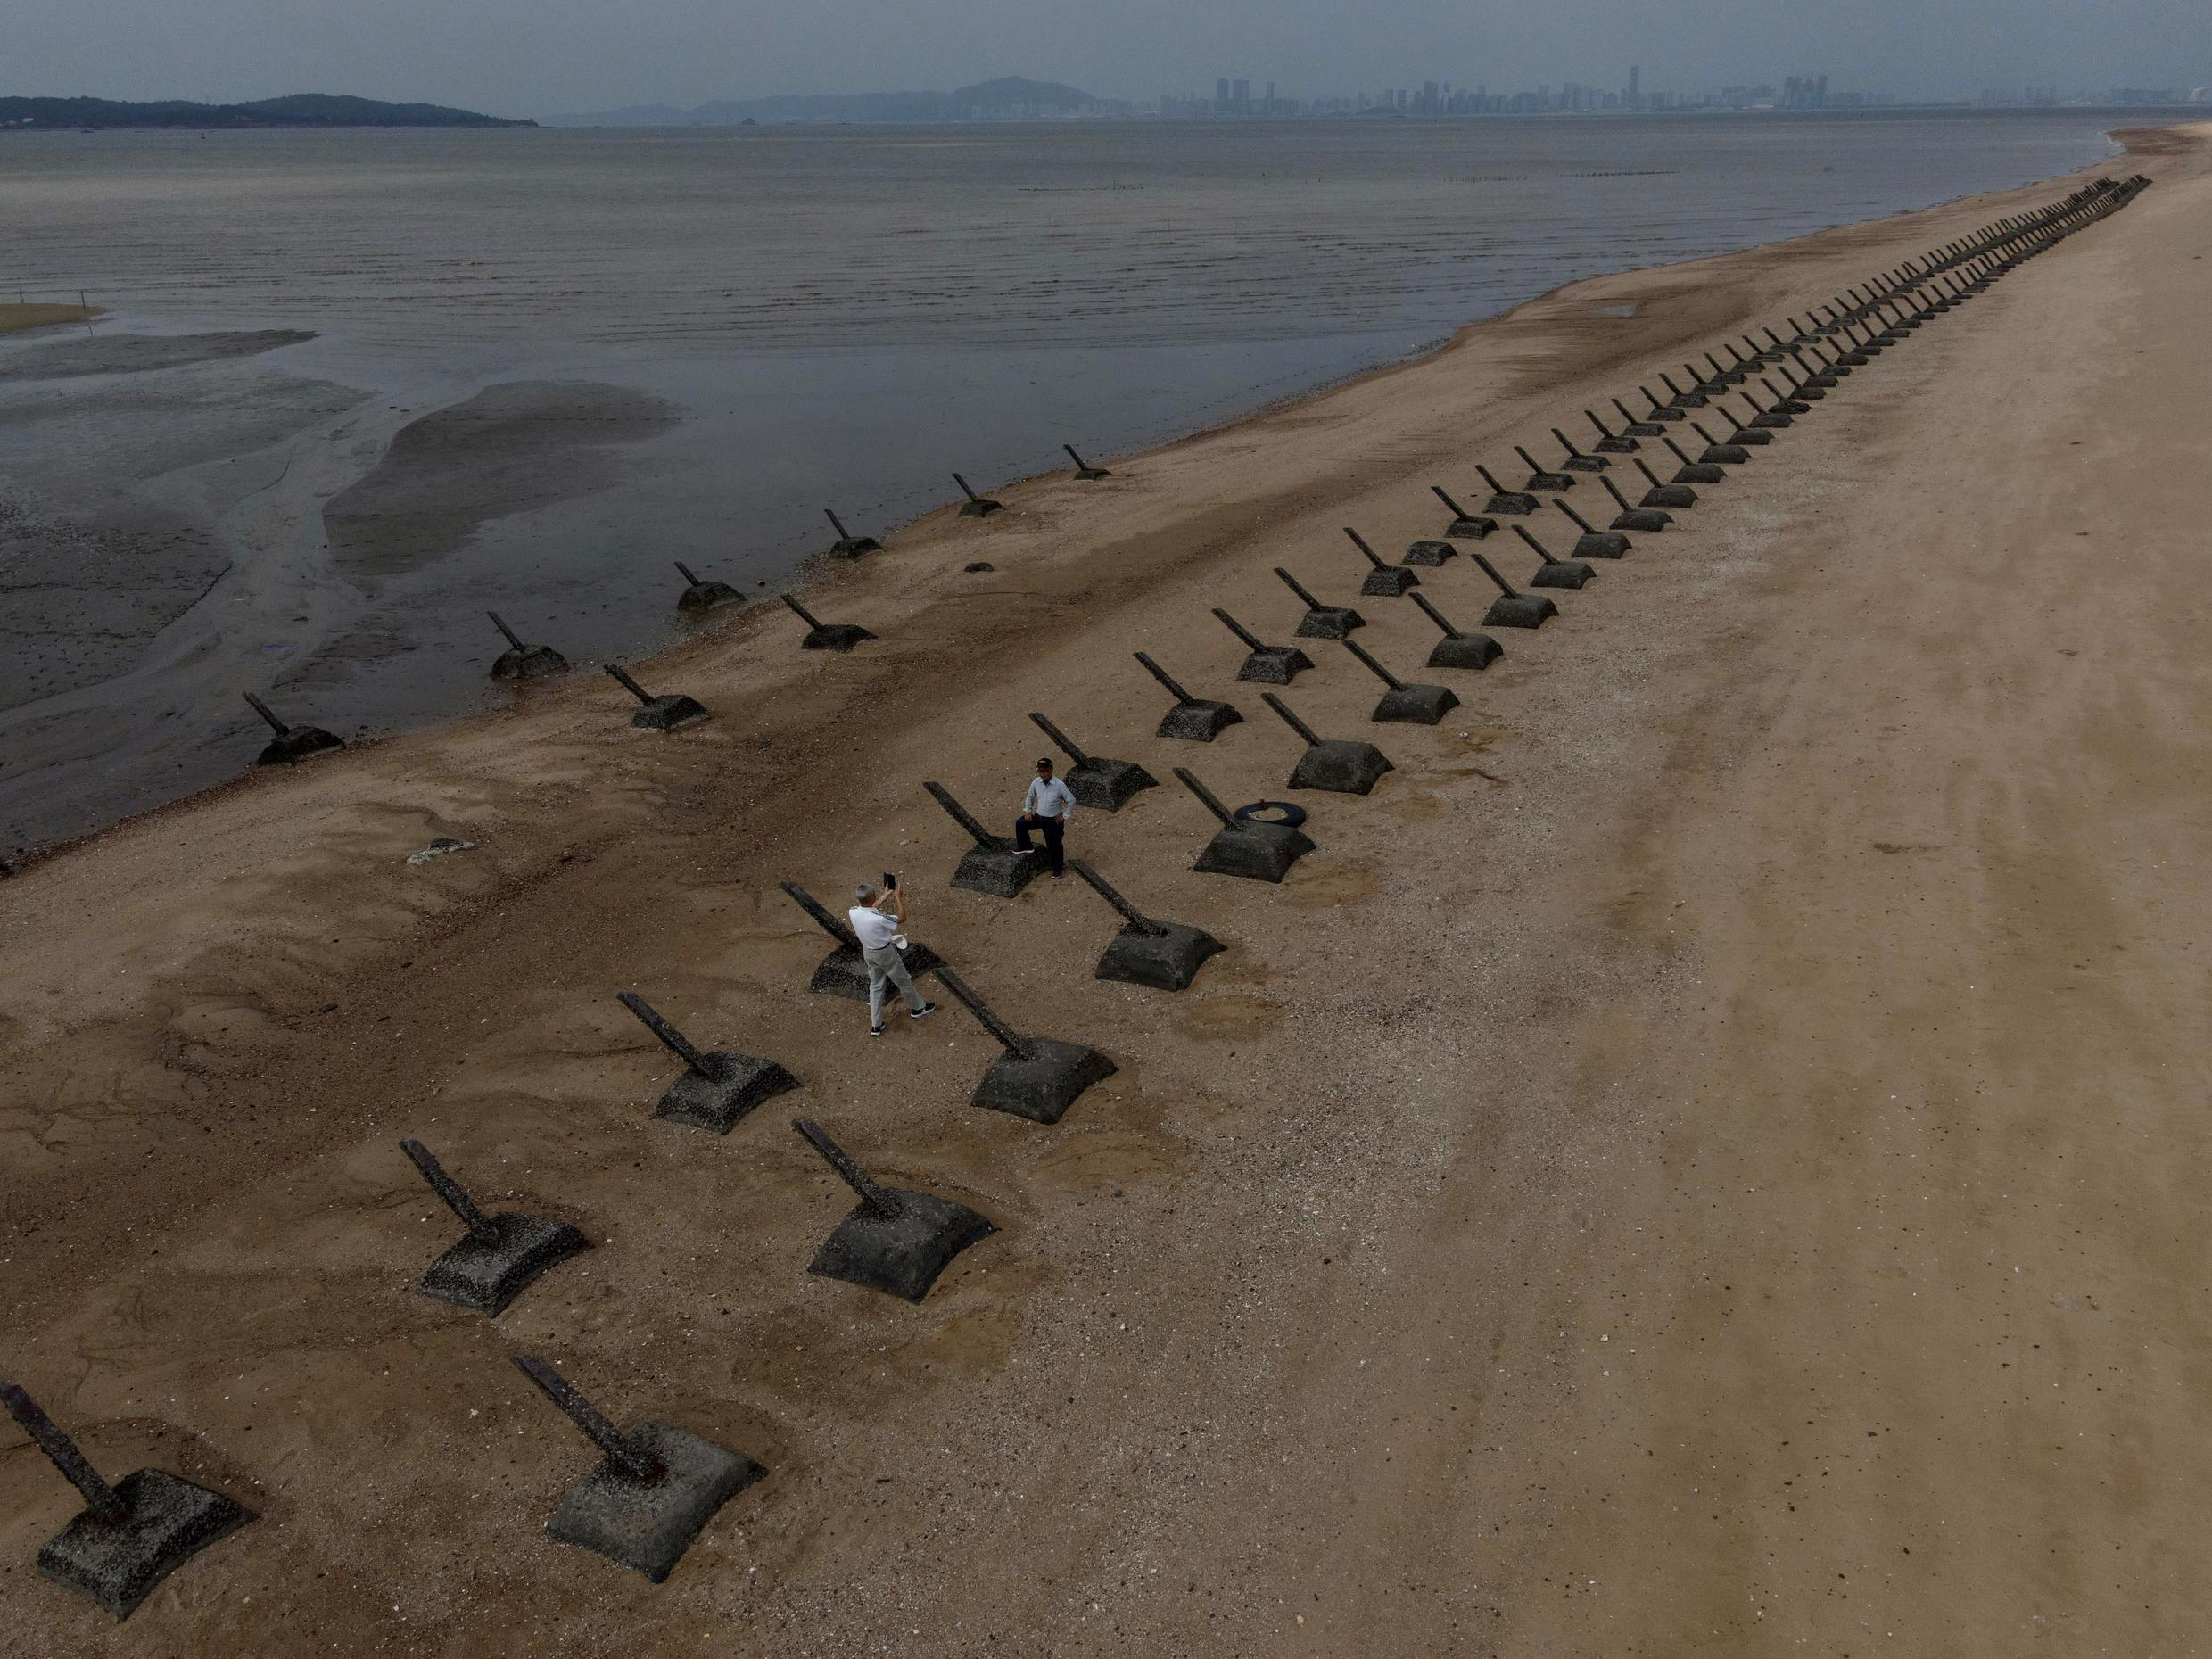 Anti-landing spikes line a beach in Taiwan's Kinmen, with mainland China visible in the background